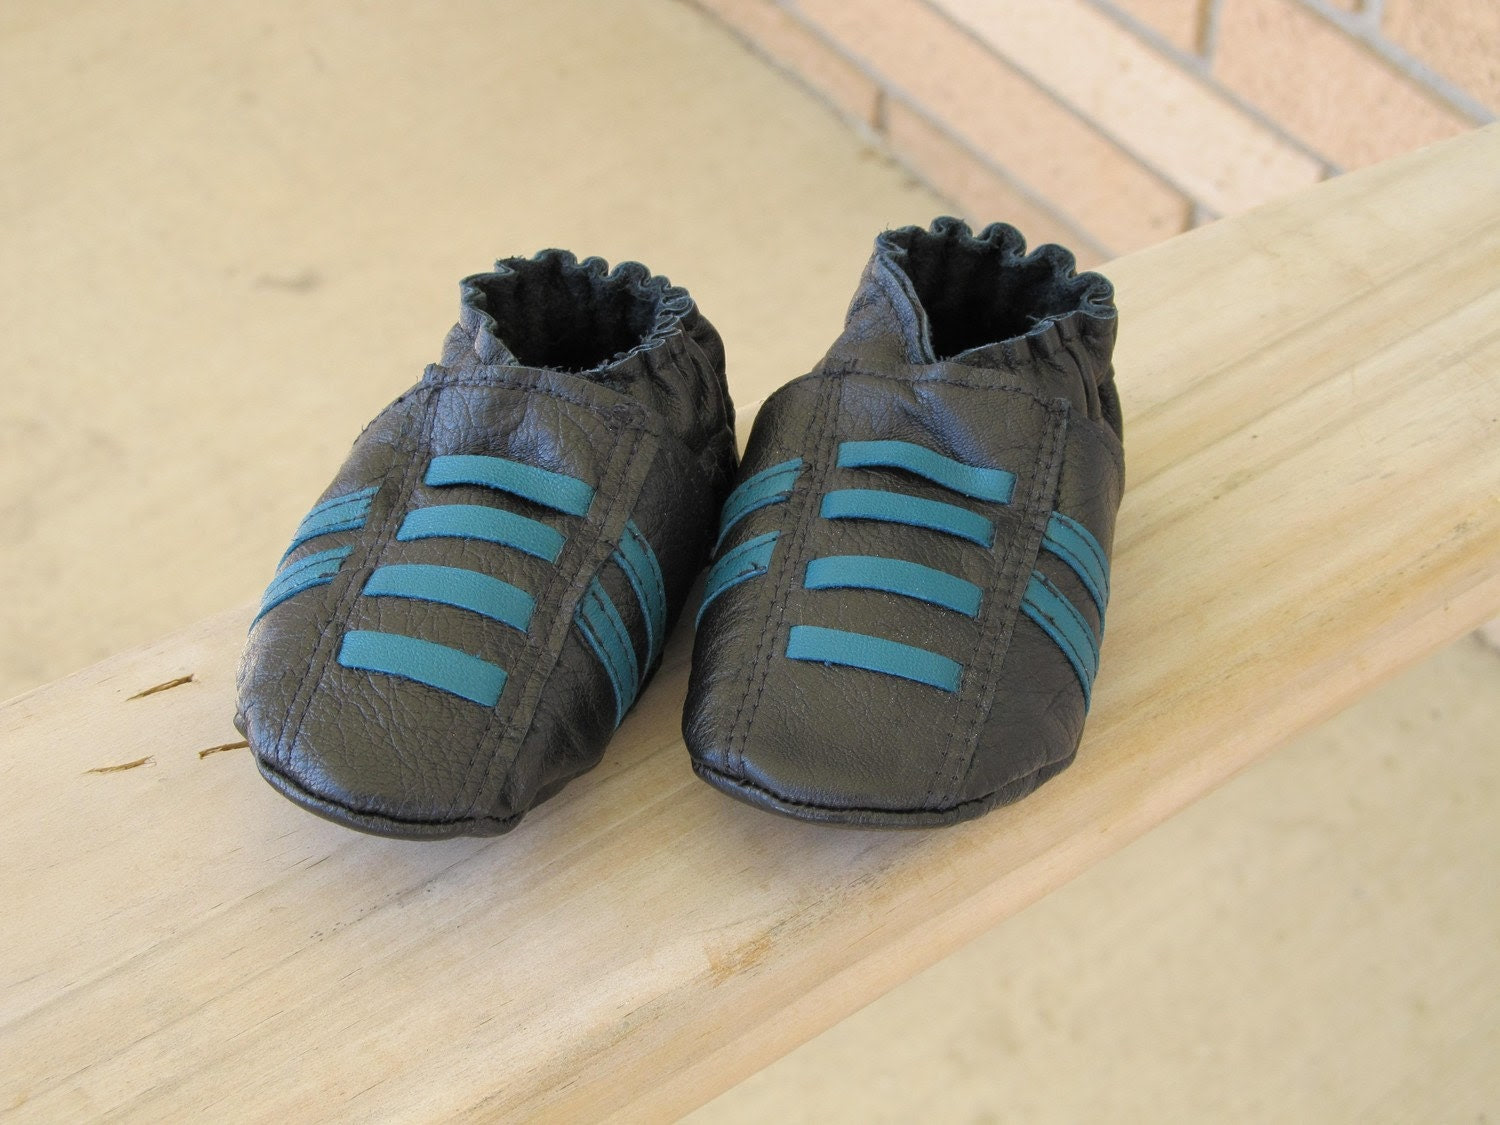 Black & Teal Leather Shoes Size 3, 12-18 months Running Style